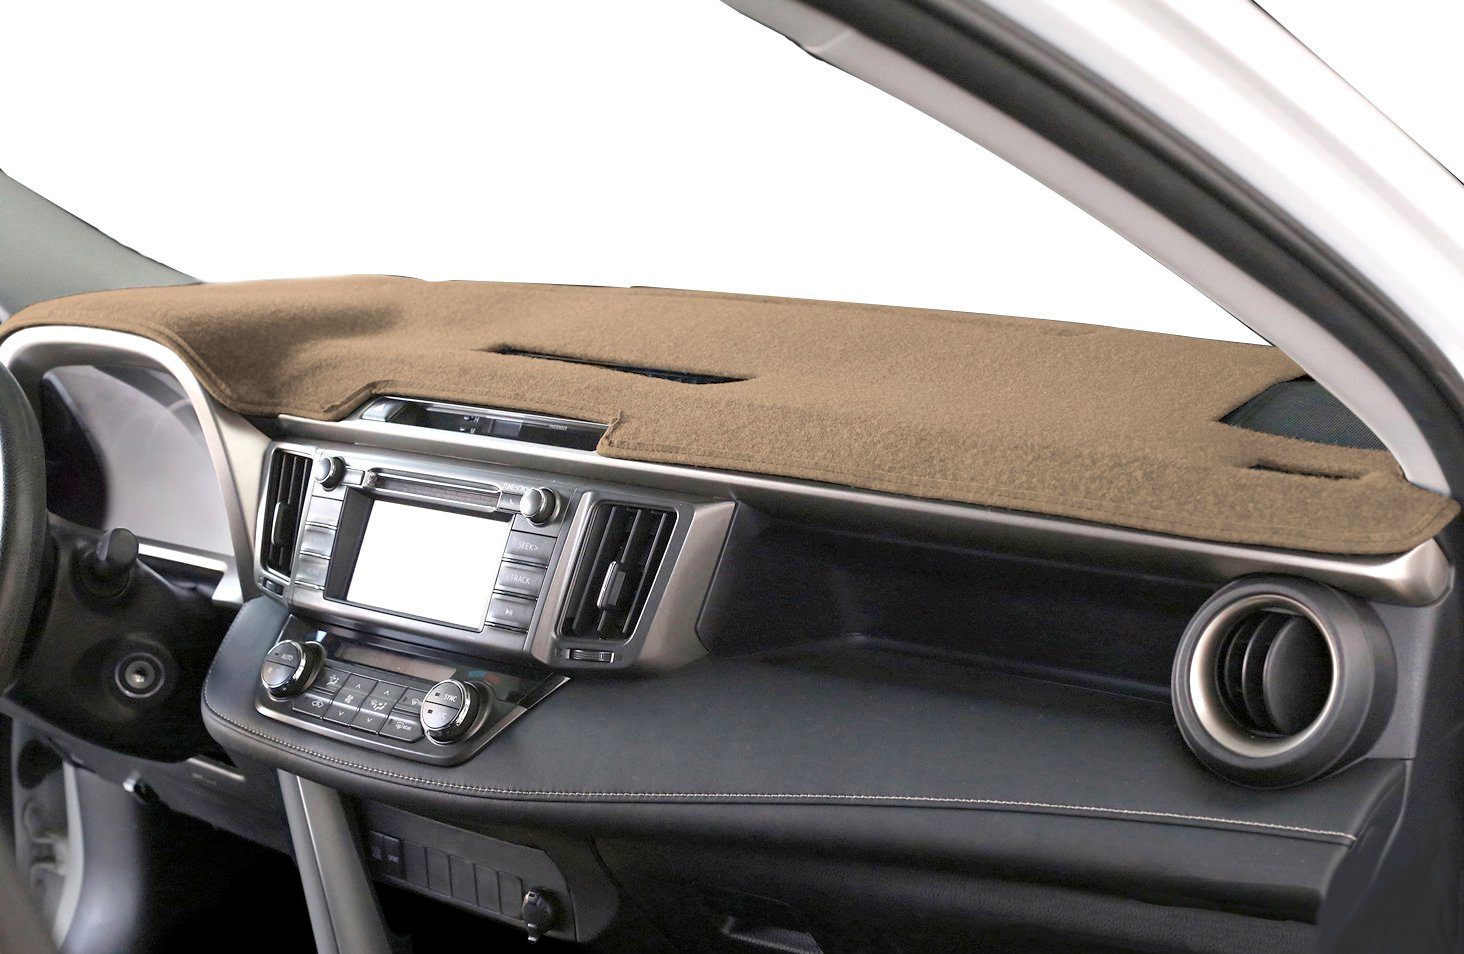 Coverking Molded Dash Cover Free Shipping Amp Price Match